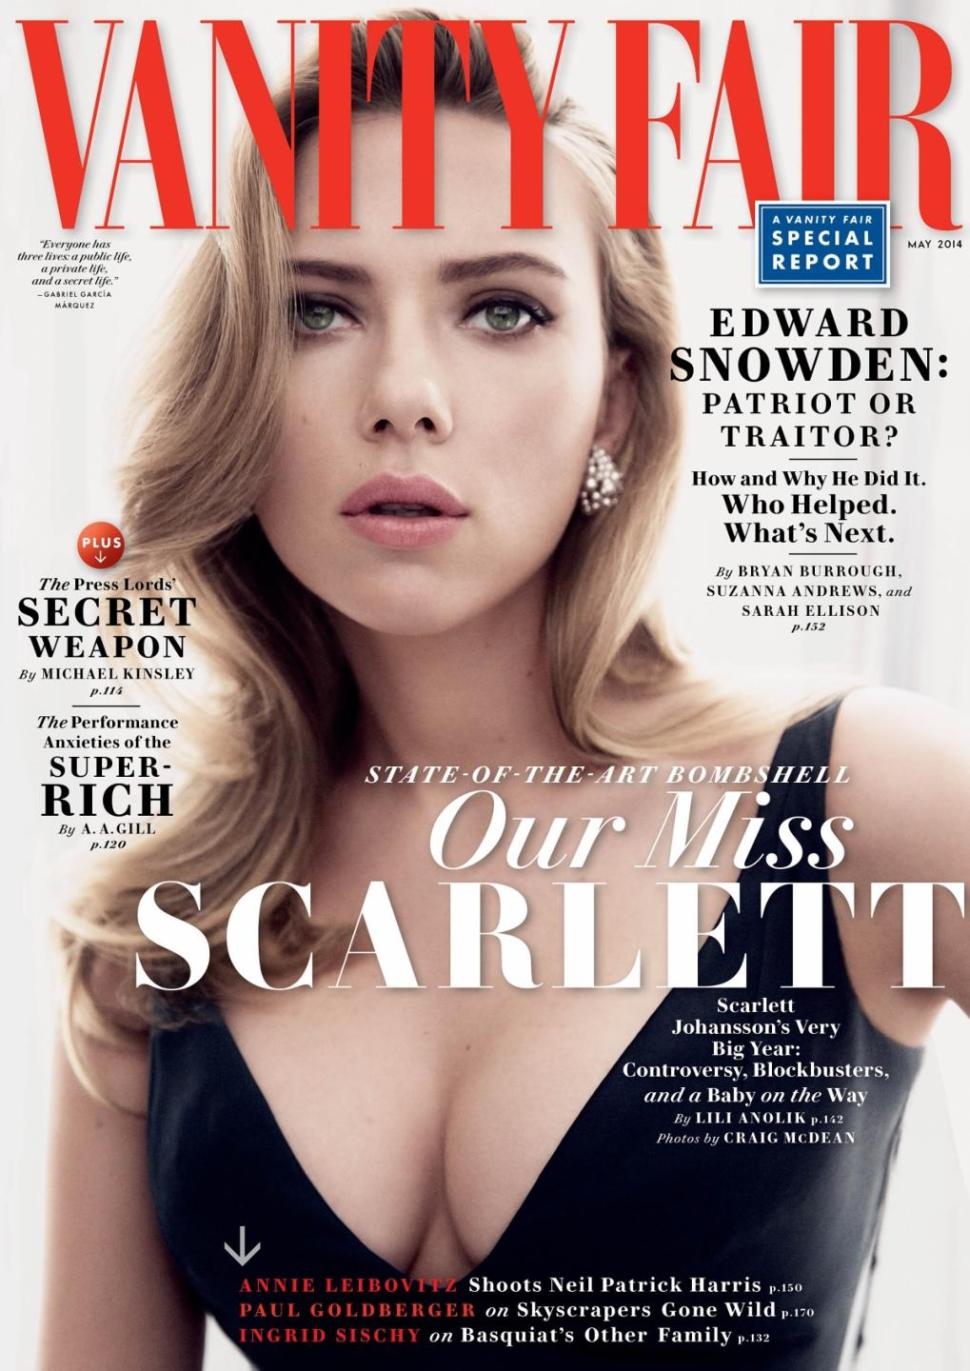 Beautiful American Actress Scarlett Johansson Modeling For The Cover Of Vanity Fair Modeling As One Of The Highest Paid Actresses In The World.